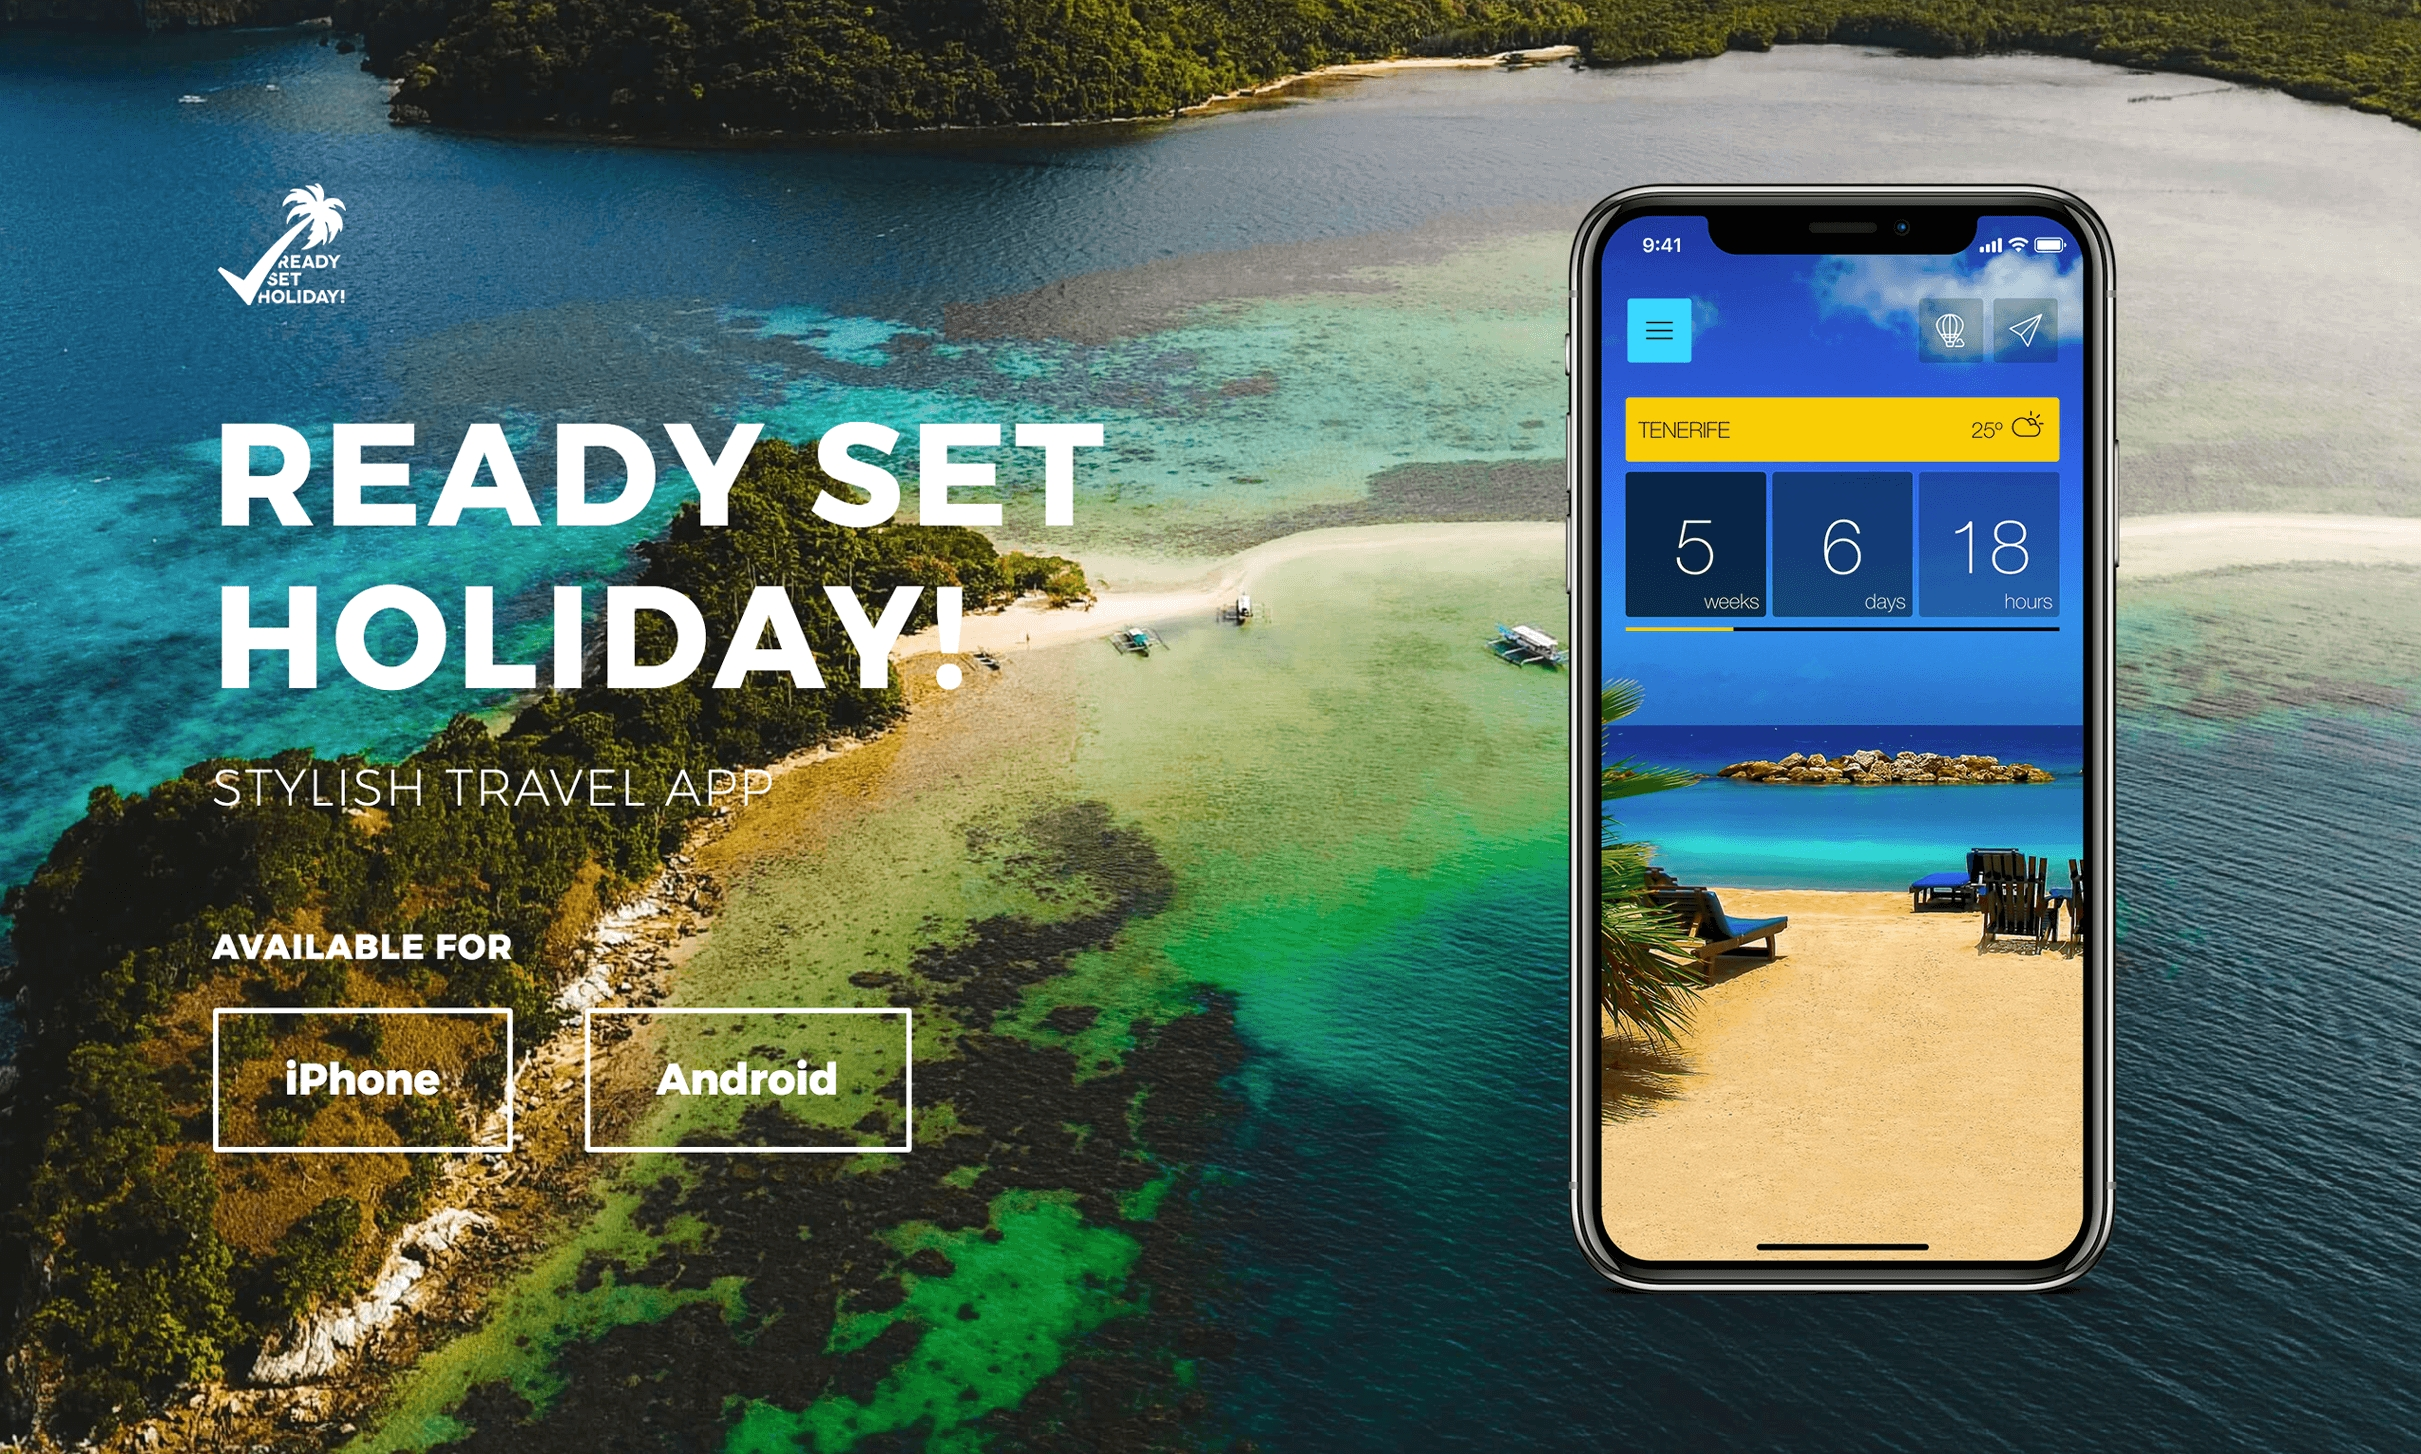 Ready Set Holiday! Stylish Travel App On Iphone And Android_Calendar Countdown On Iphone